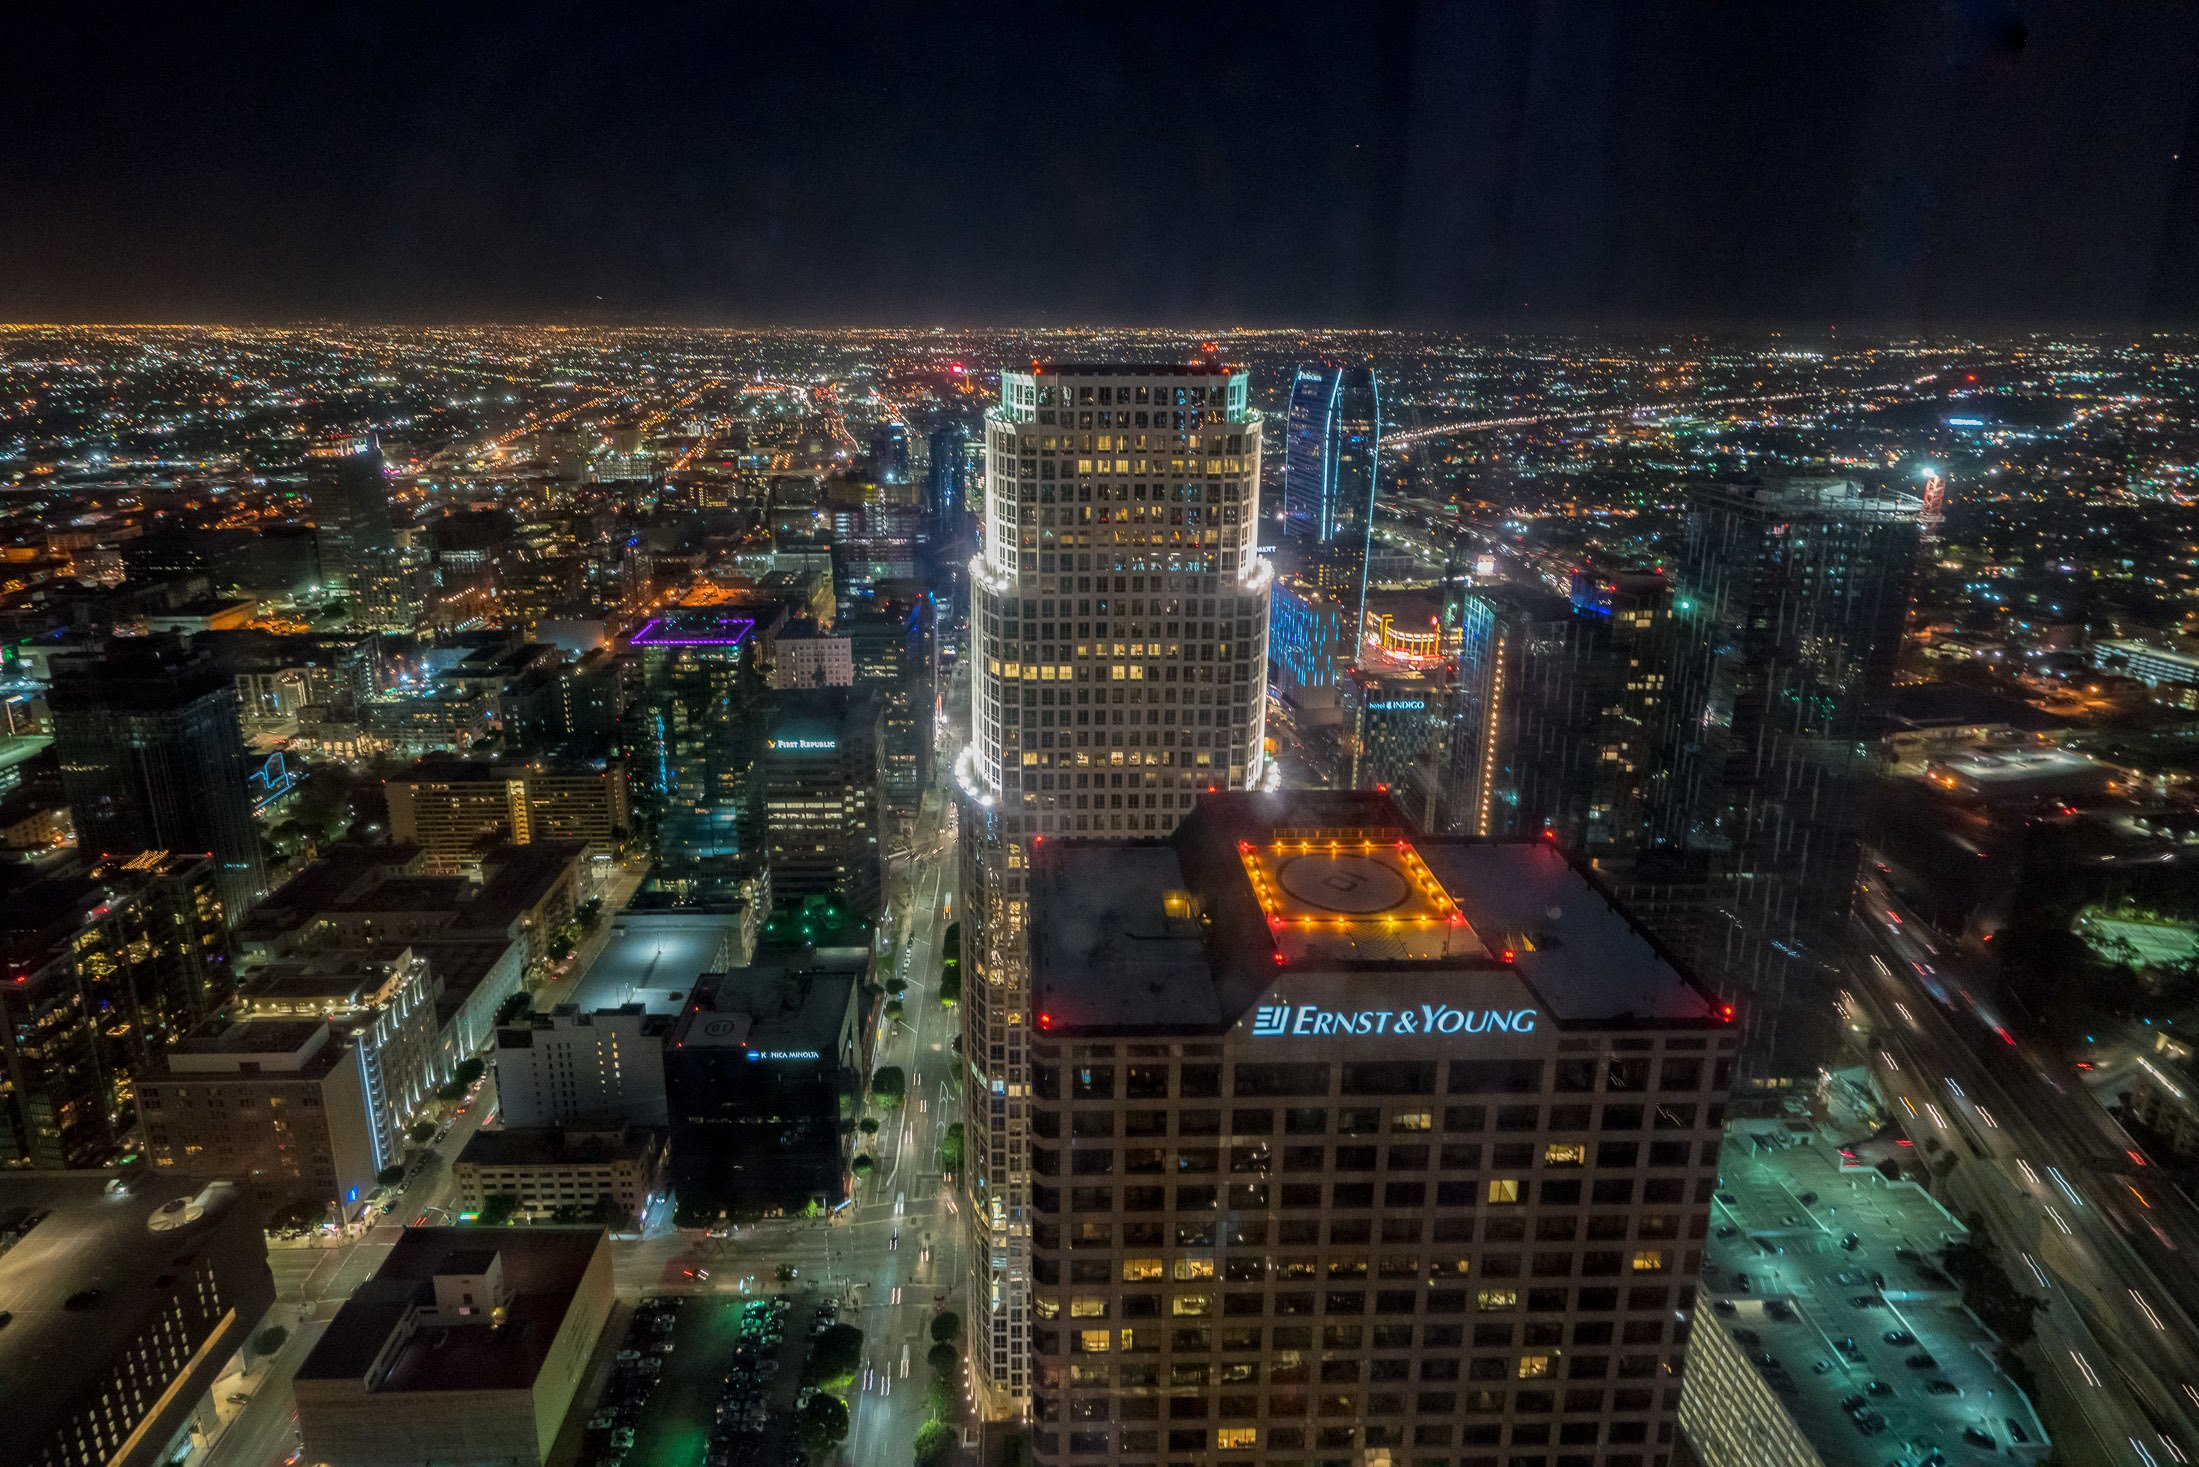 The night view at InterContinental Los Angeles Downtown.